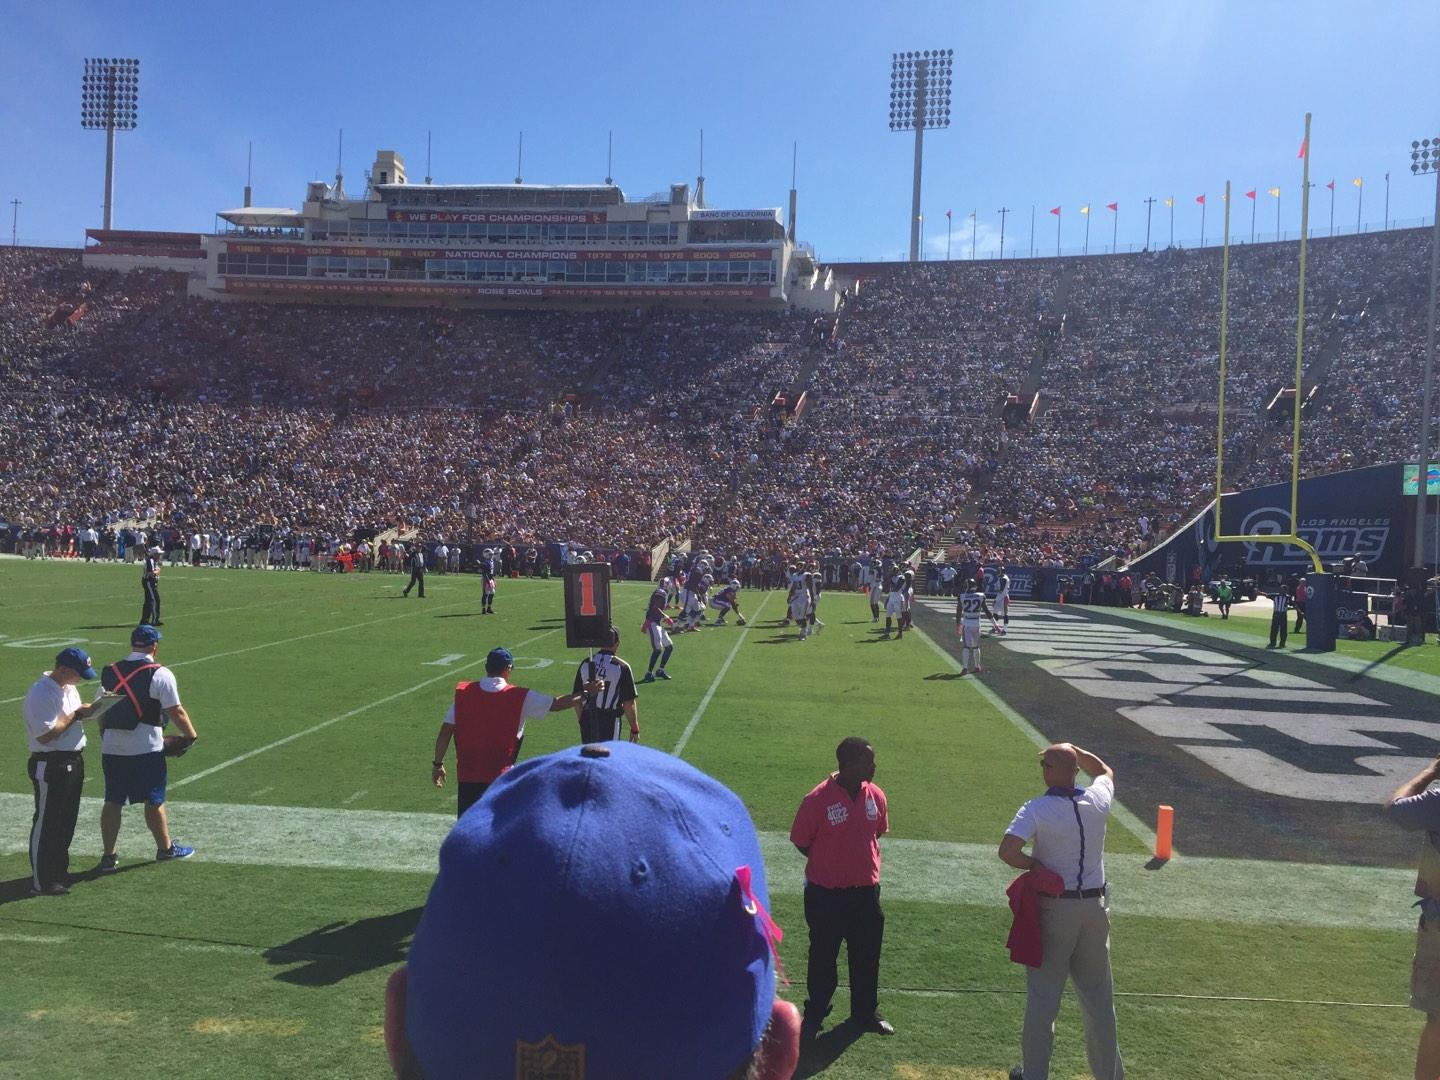 Los Angeles Memorial Coliseum Section 19L Row 2 Seat 8